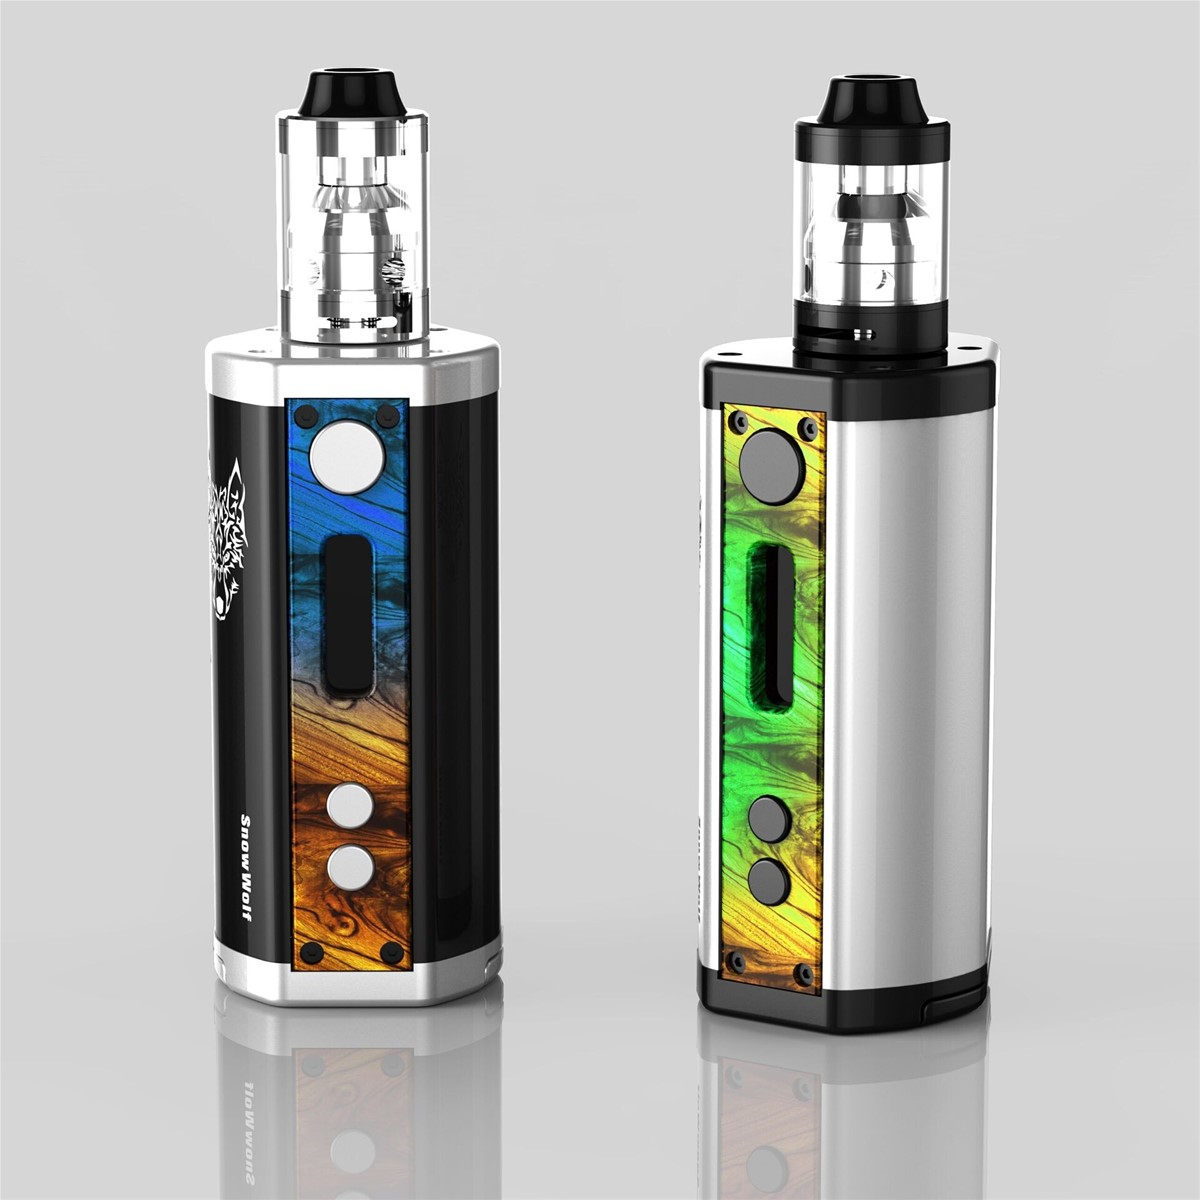 supplier Snowwolf 218w BY SIGELEI Snowwolf 218 TC box mod Snowwolf 218 3*18650 battery !!